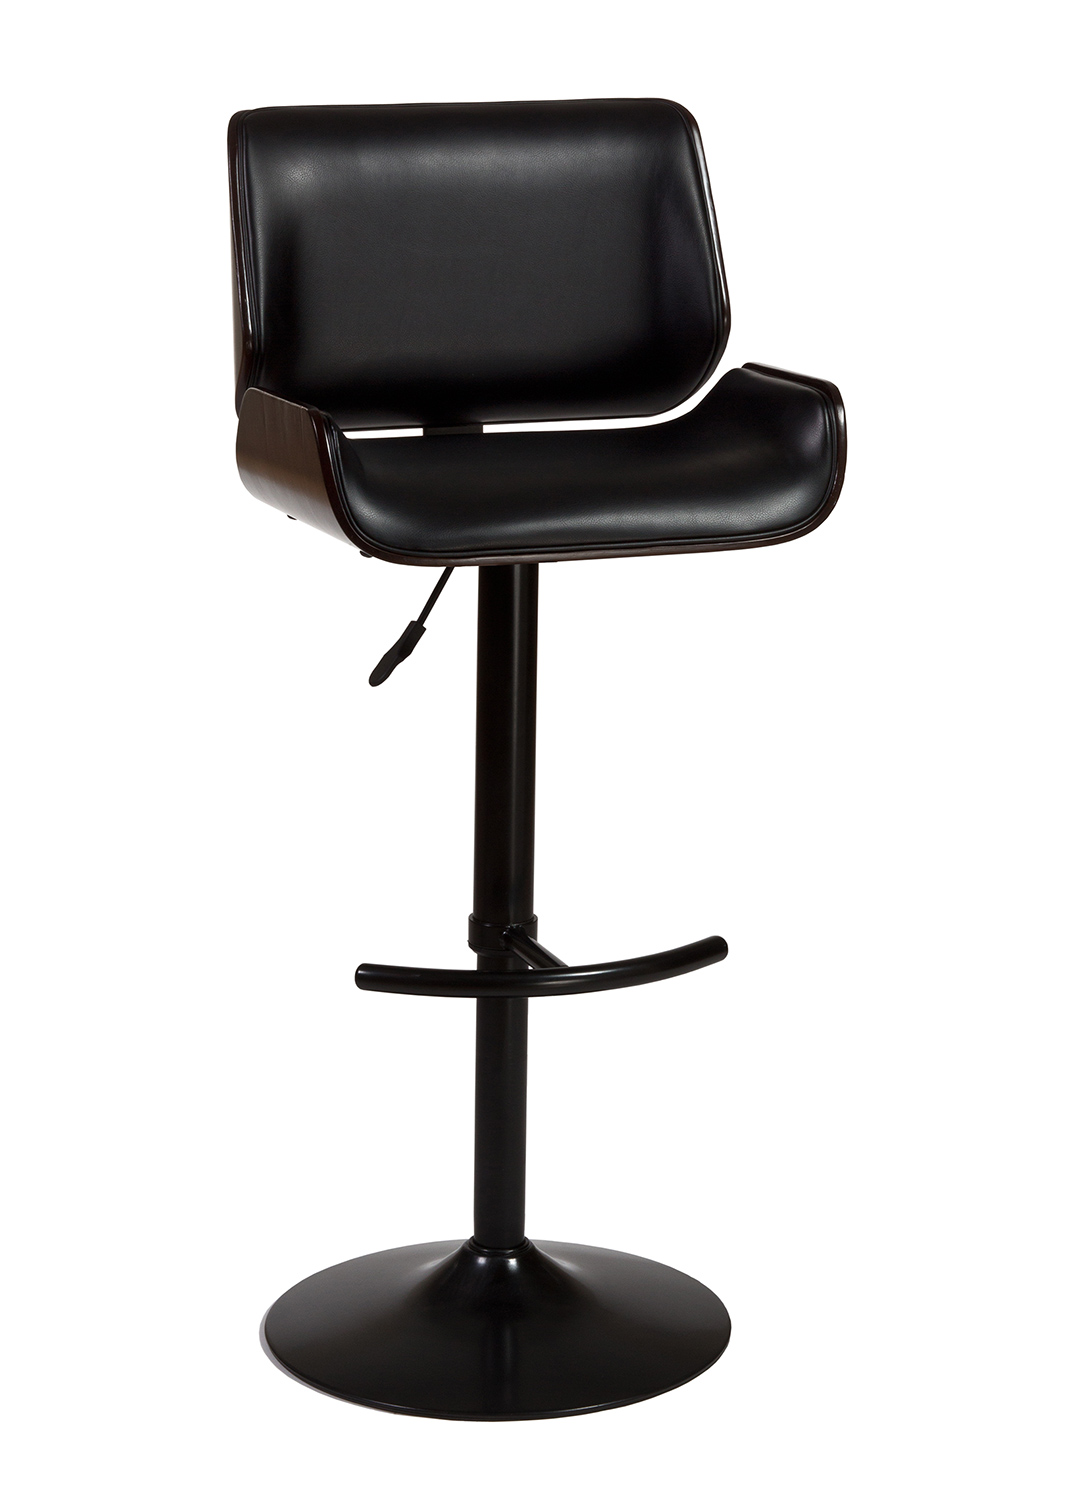 Hillsdale Radcliff Adjustable Bar Stool Black Metal